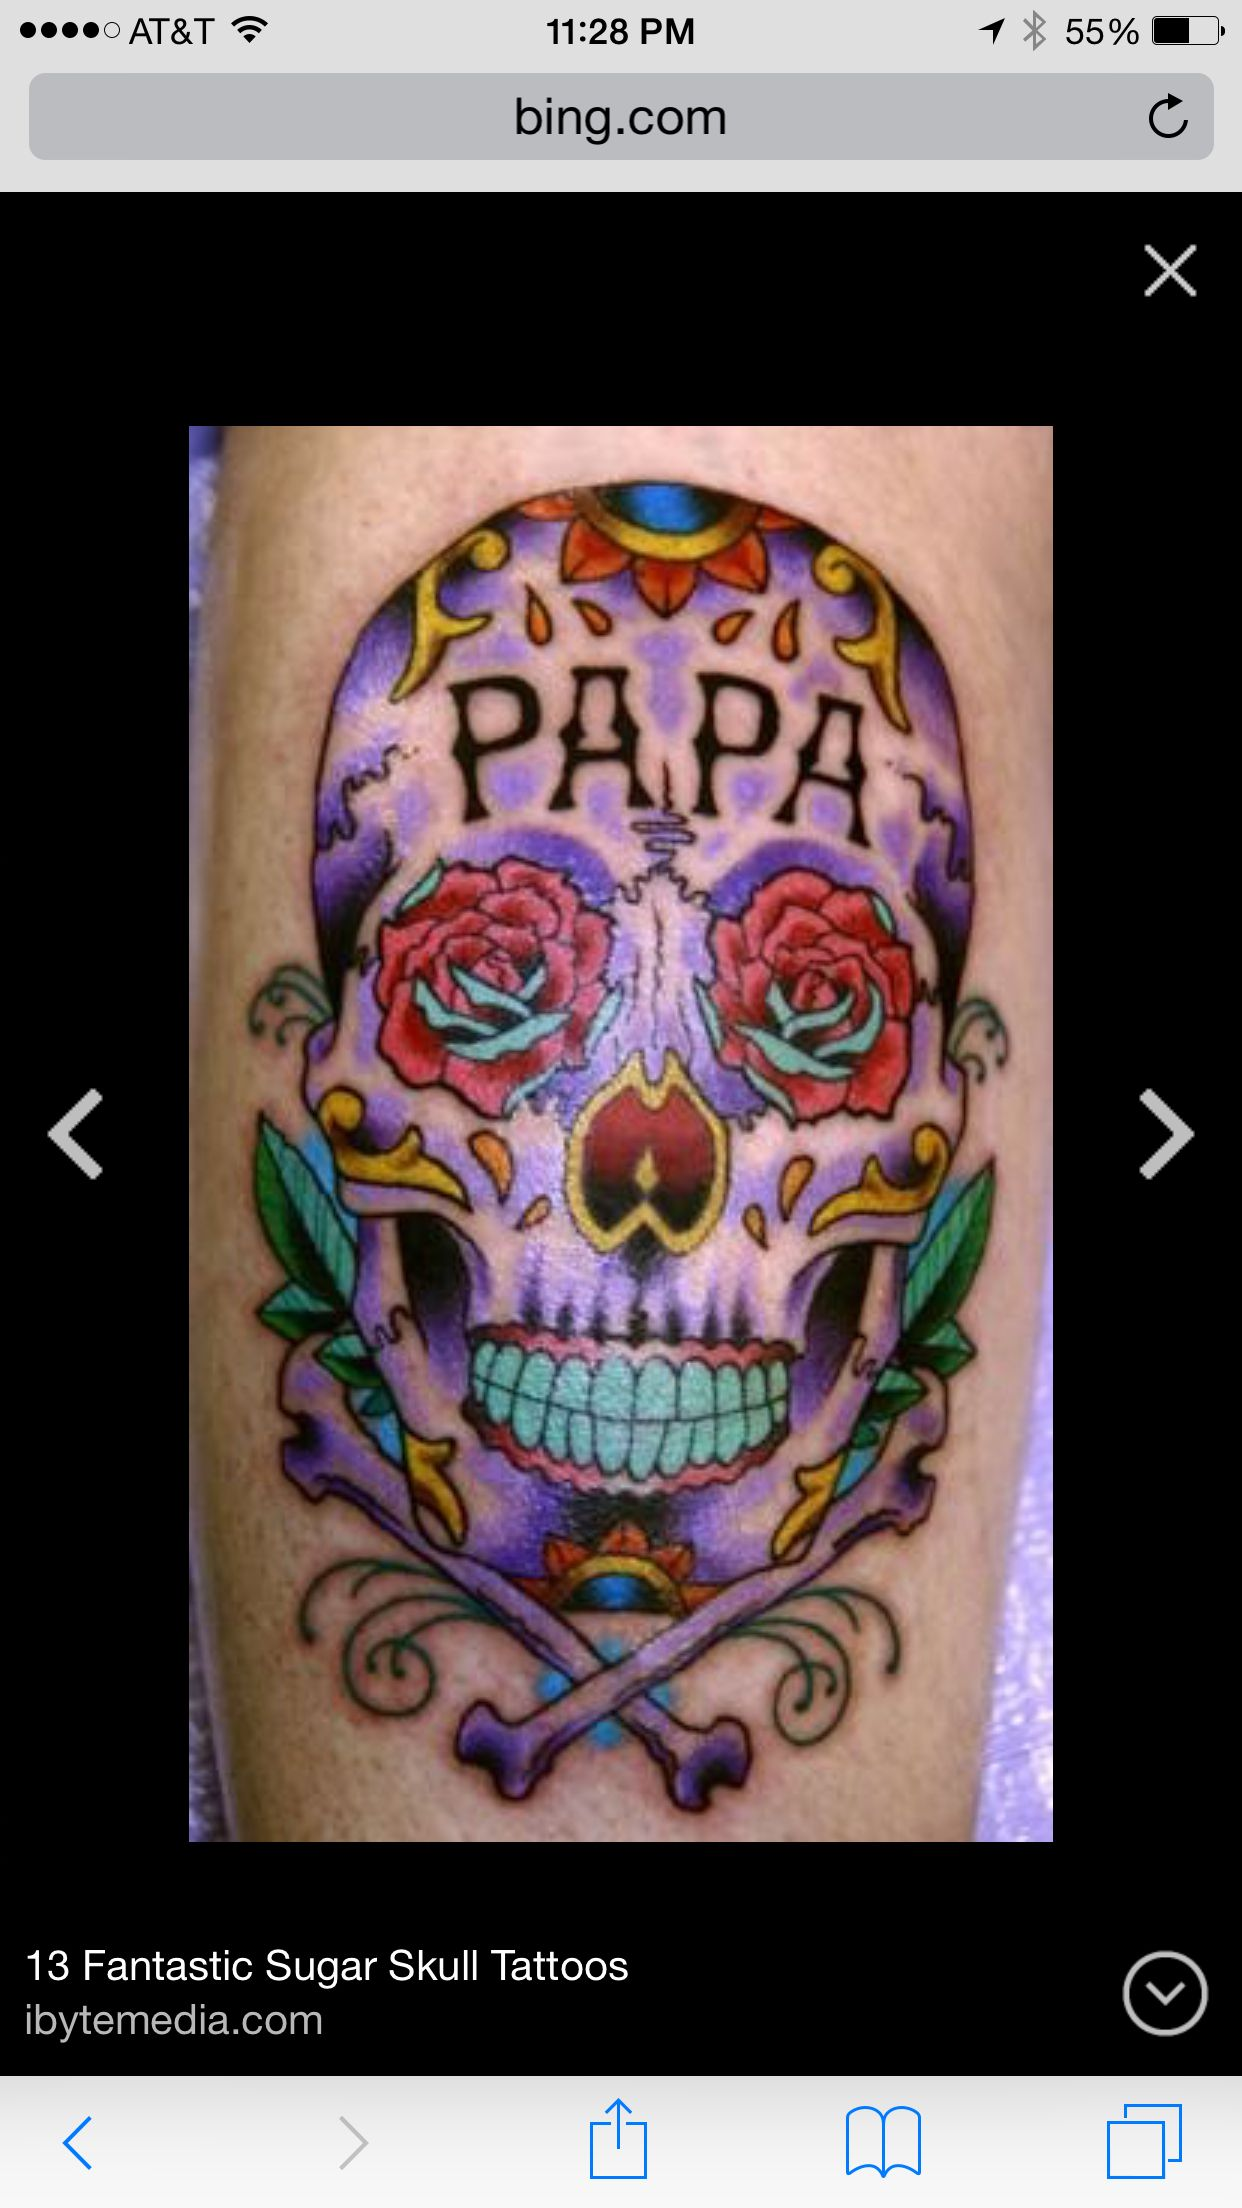 Tattoo, colorful, sugar skull, roses,